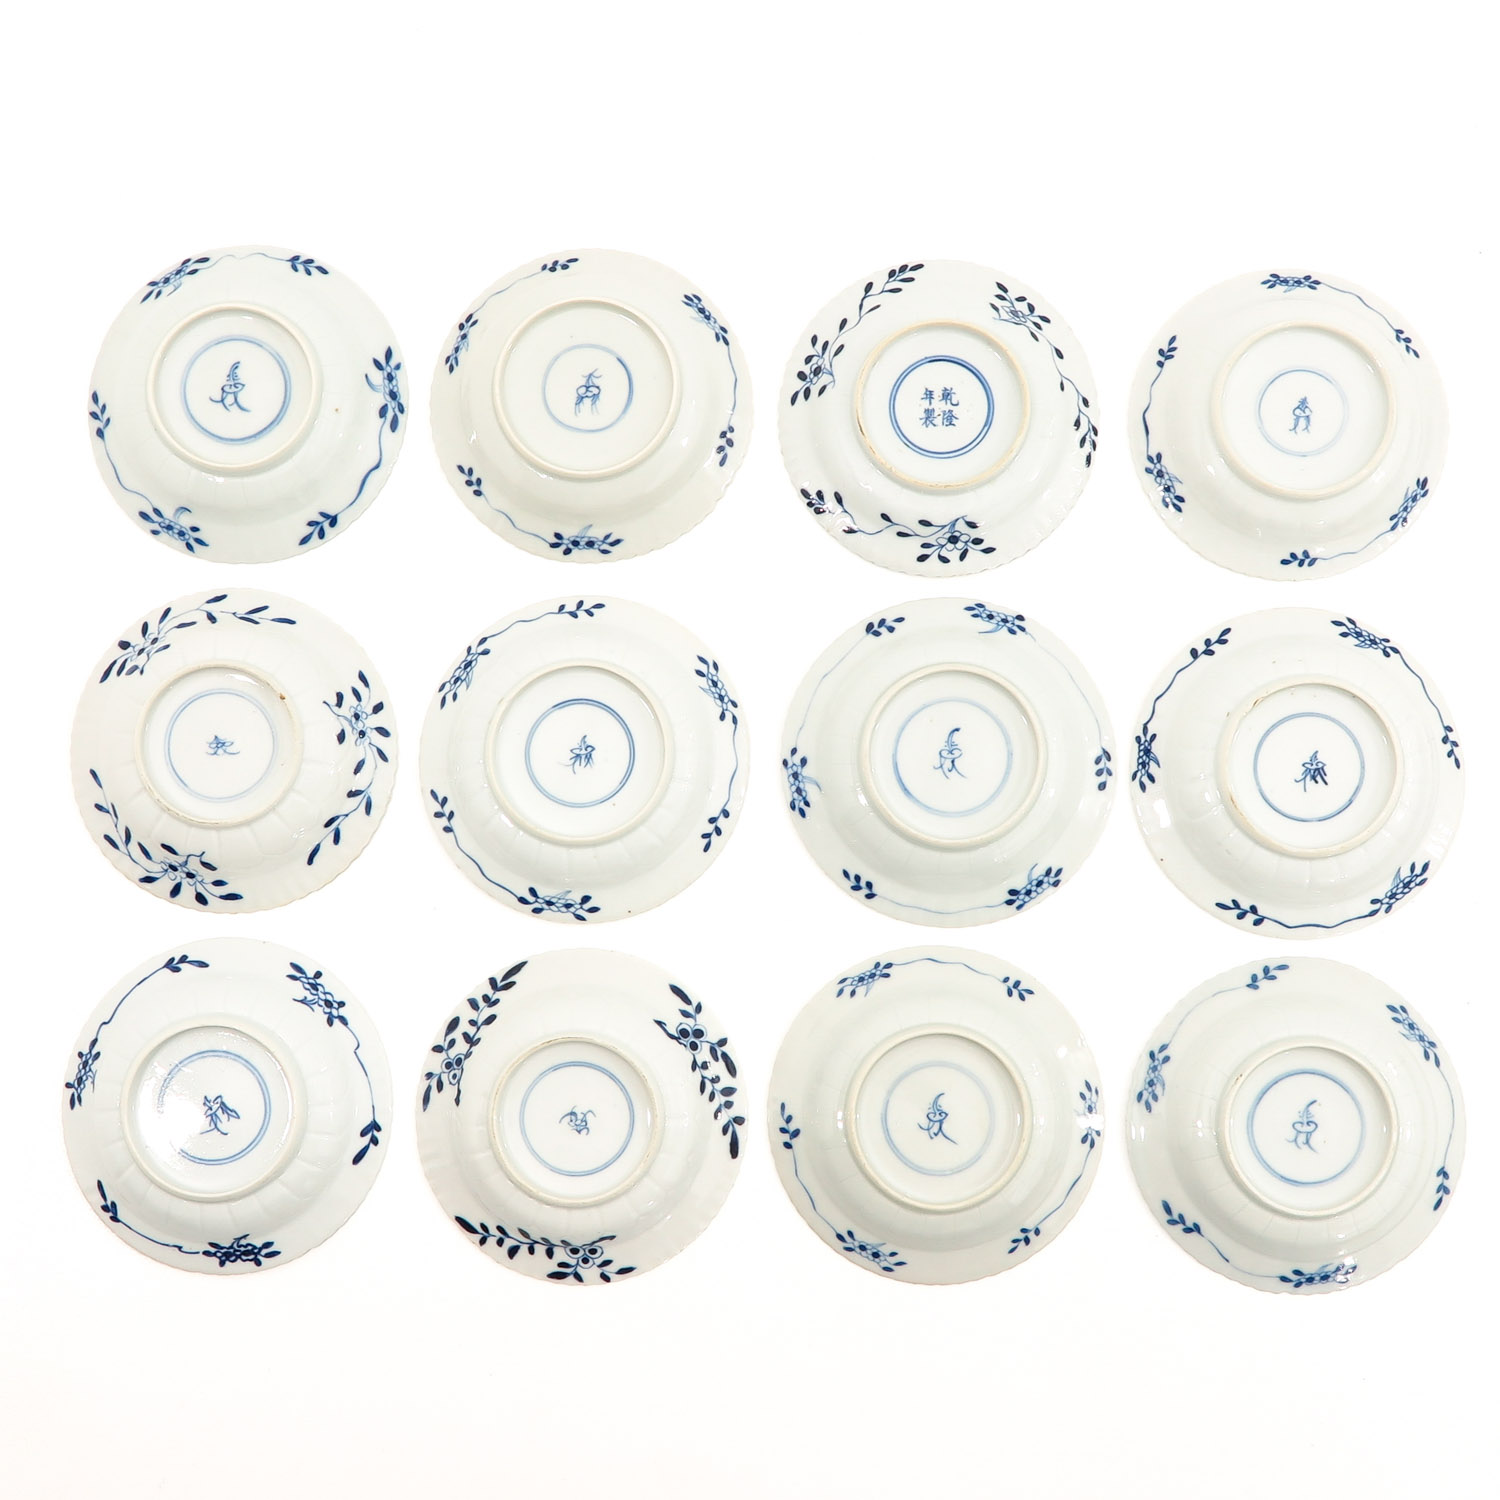 A Series of 12 Cups and Saucers - Image 8 of 10